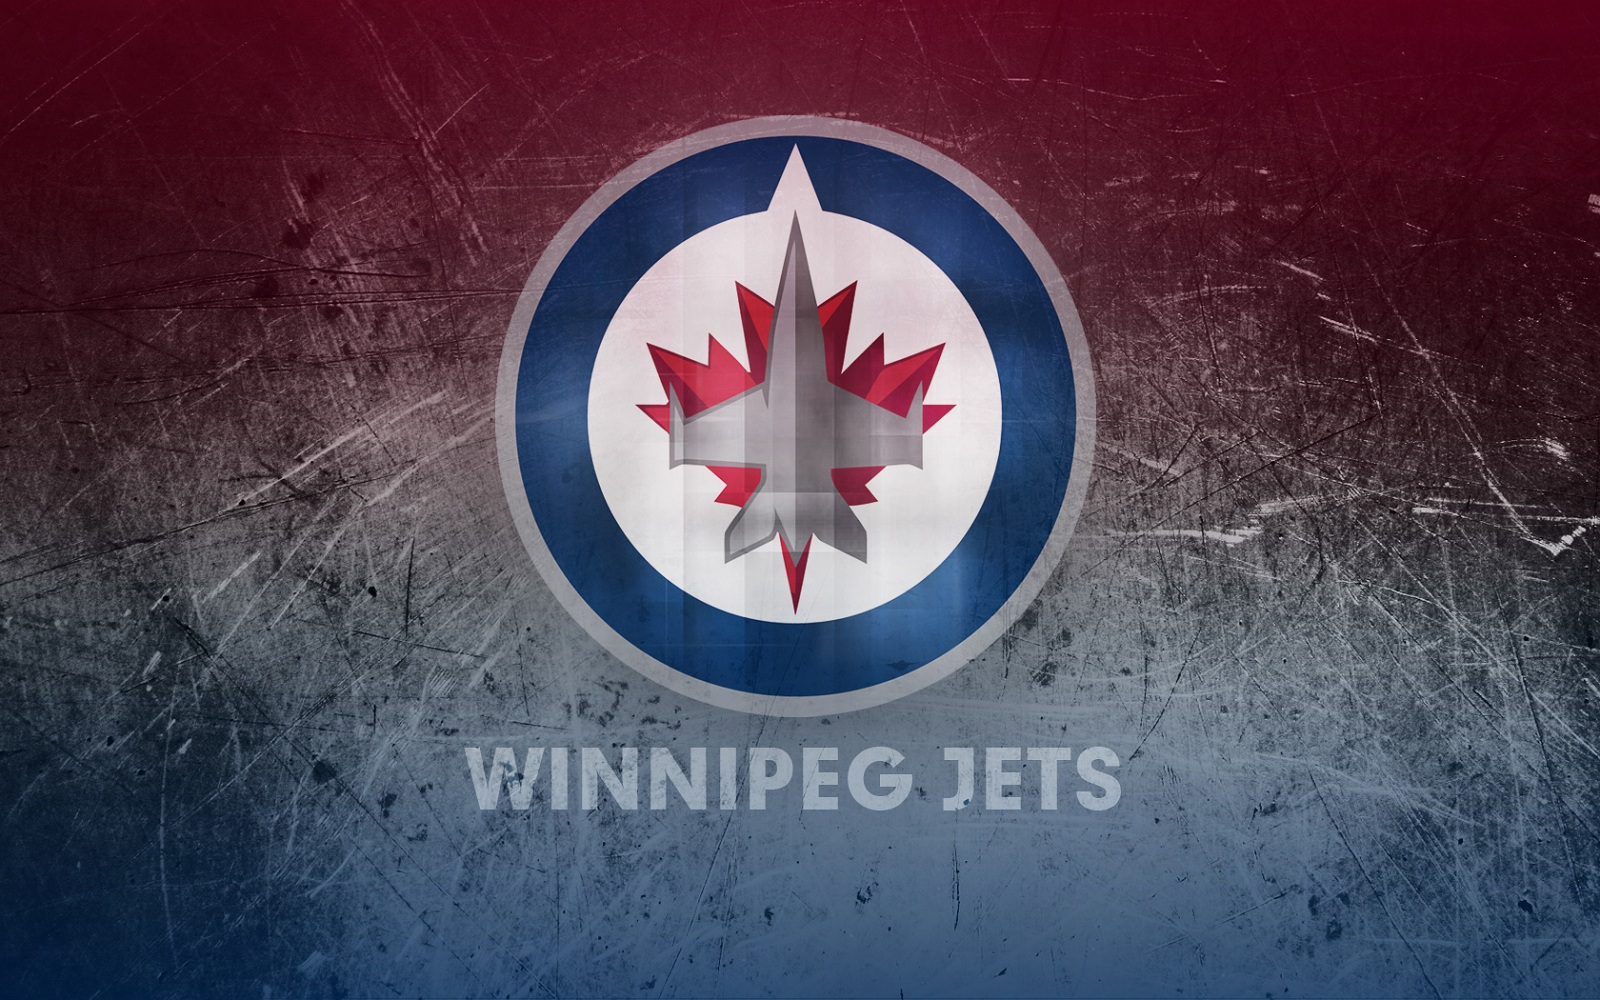 hockey Winnipeg Jets wallpaper background 1600x1000